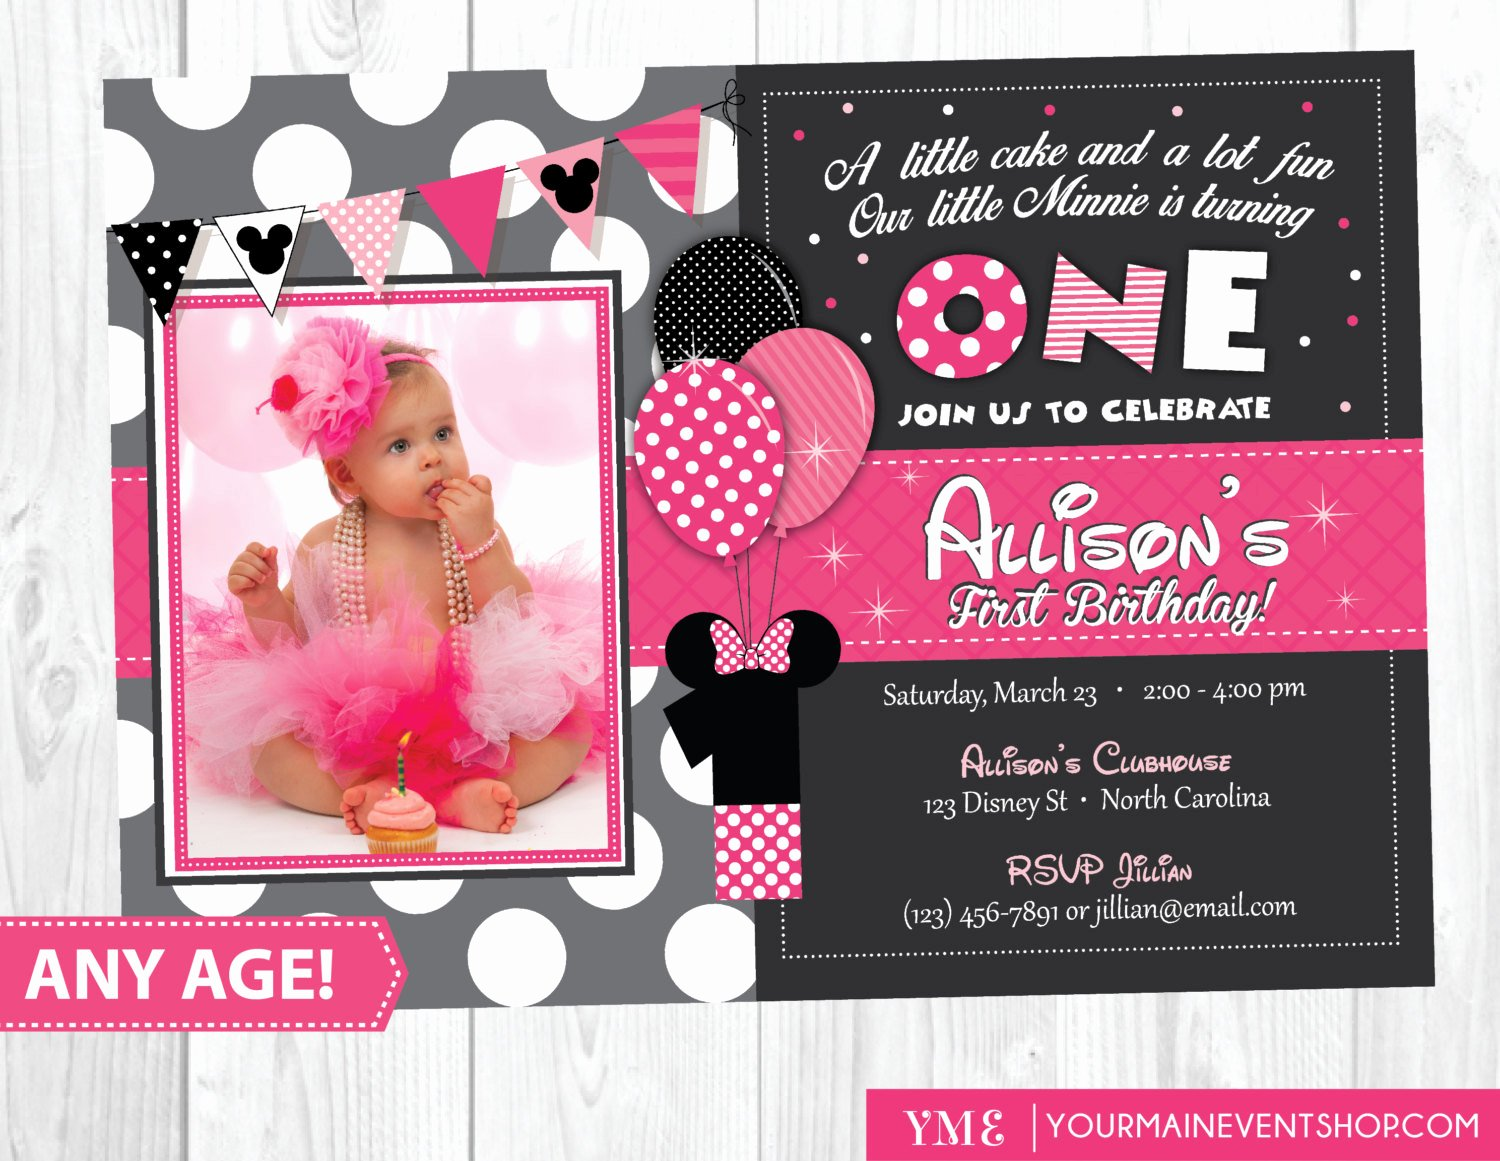 Minnie Mouse Party Invitations Luxury Minnie Mouse Birthday Invitation Minnie Mouse Inspired